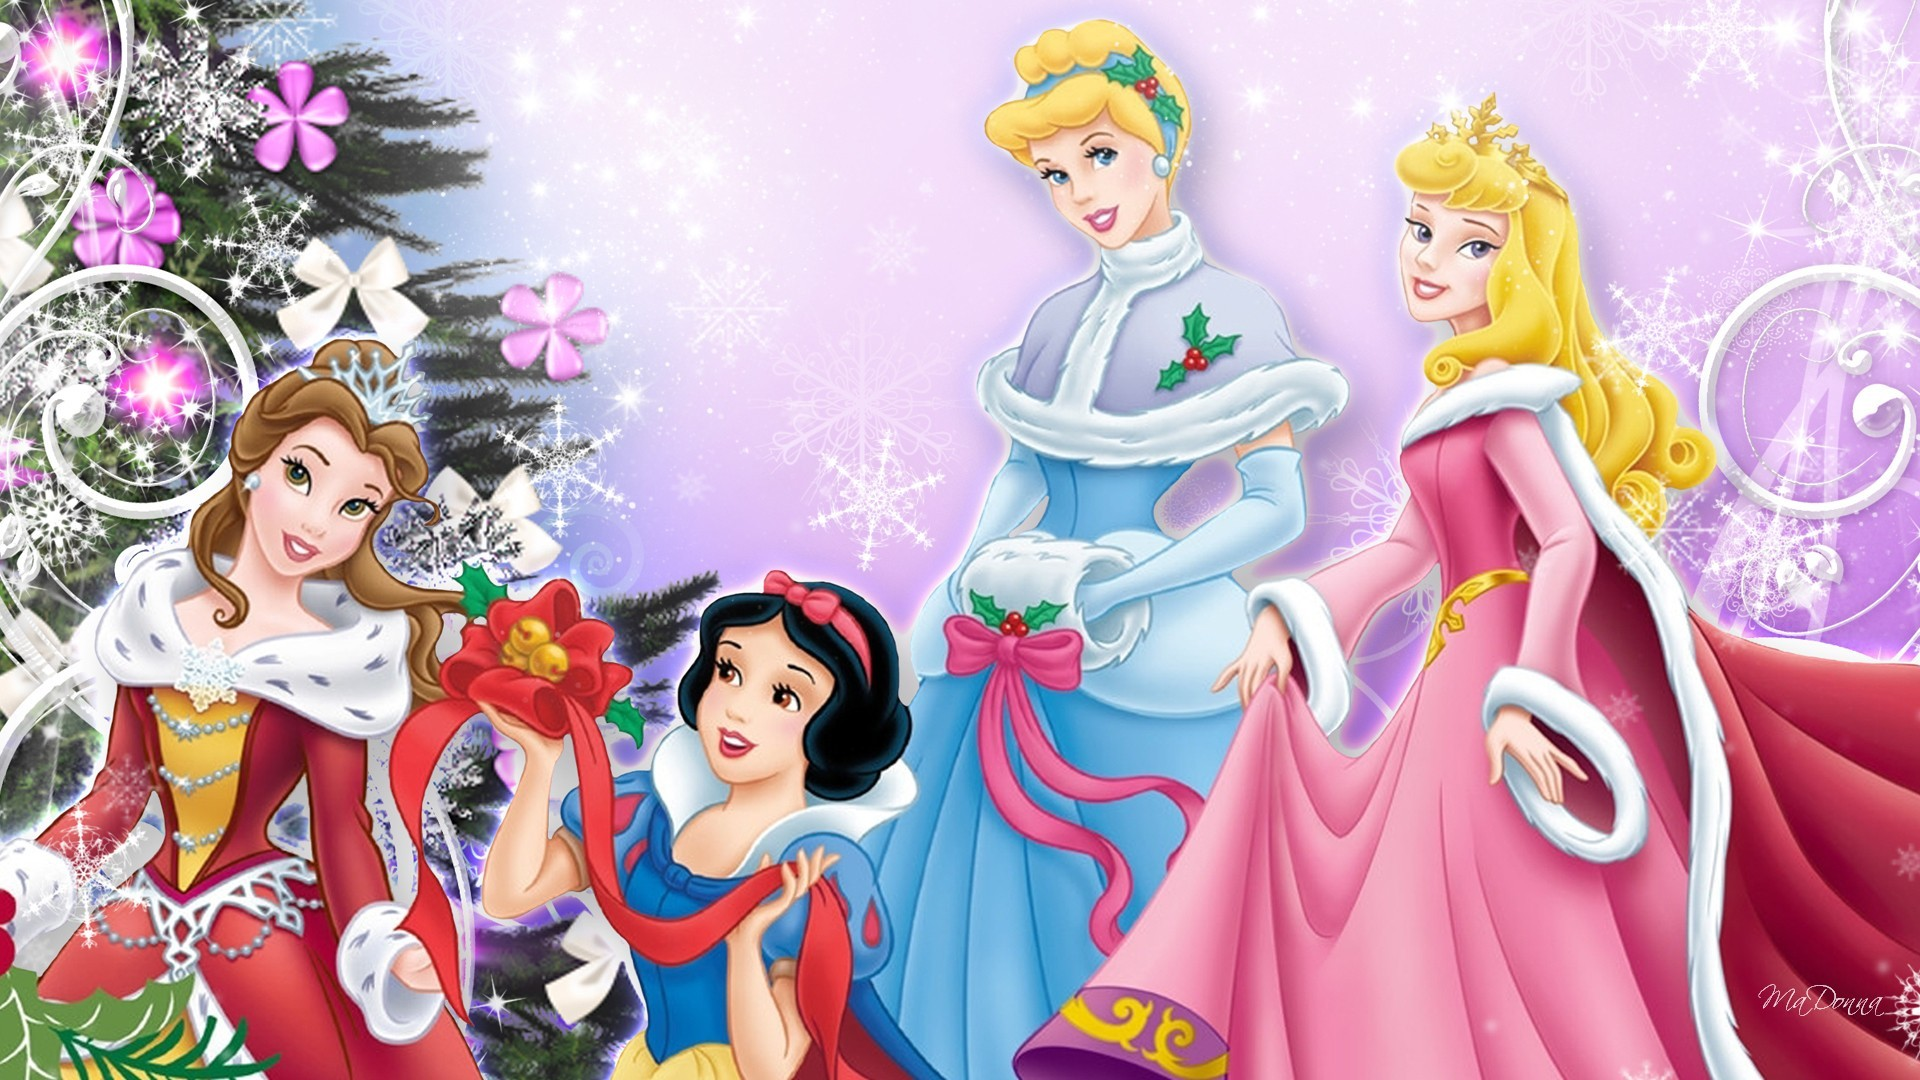 1920x1080 hd-wallpapers-download-cinderella-christmas-wallpaper-42144--